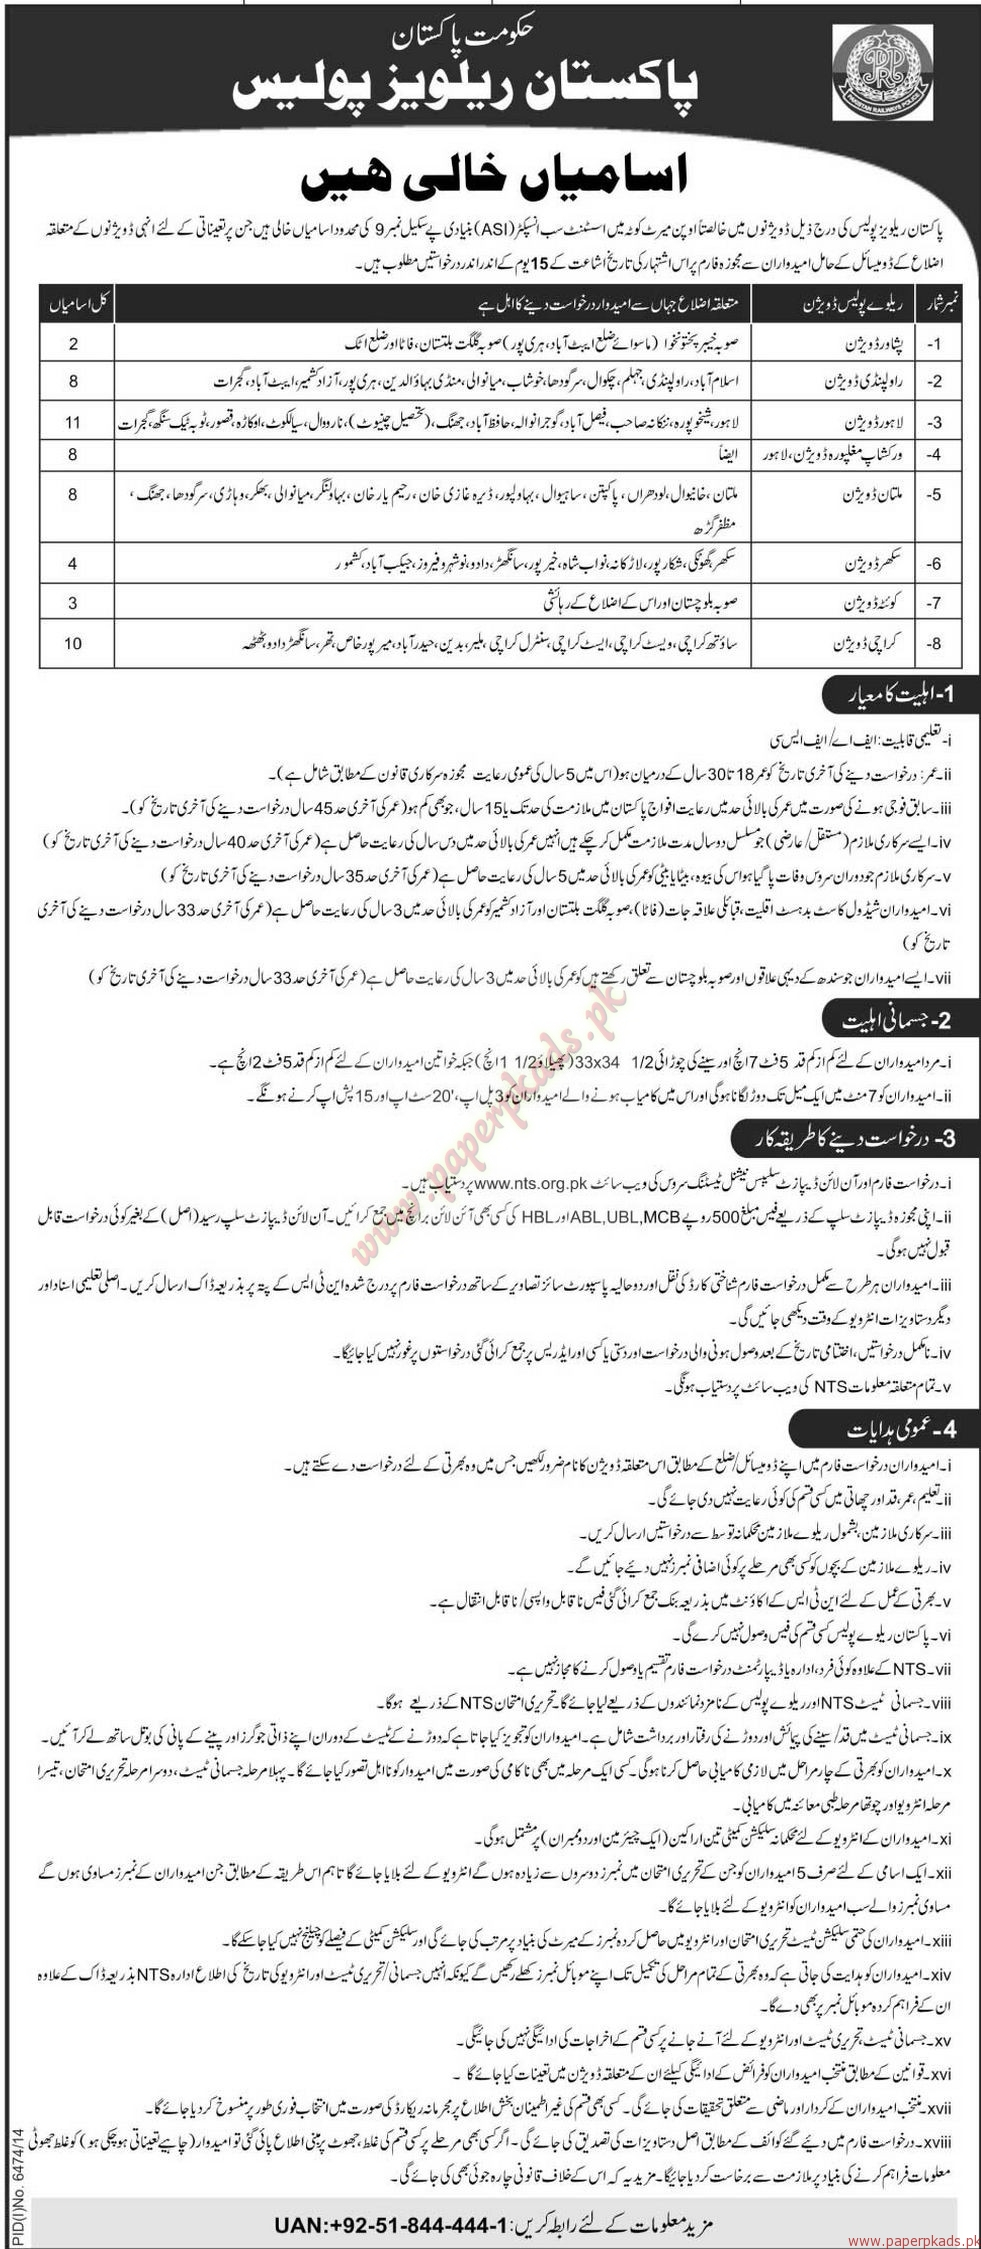 Government of Pakistan - Pakistan Railways Police Jobs - Jang Jobs ads 04 June 2015